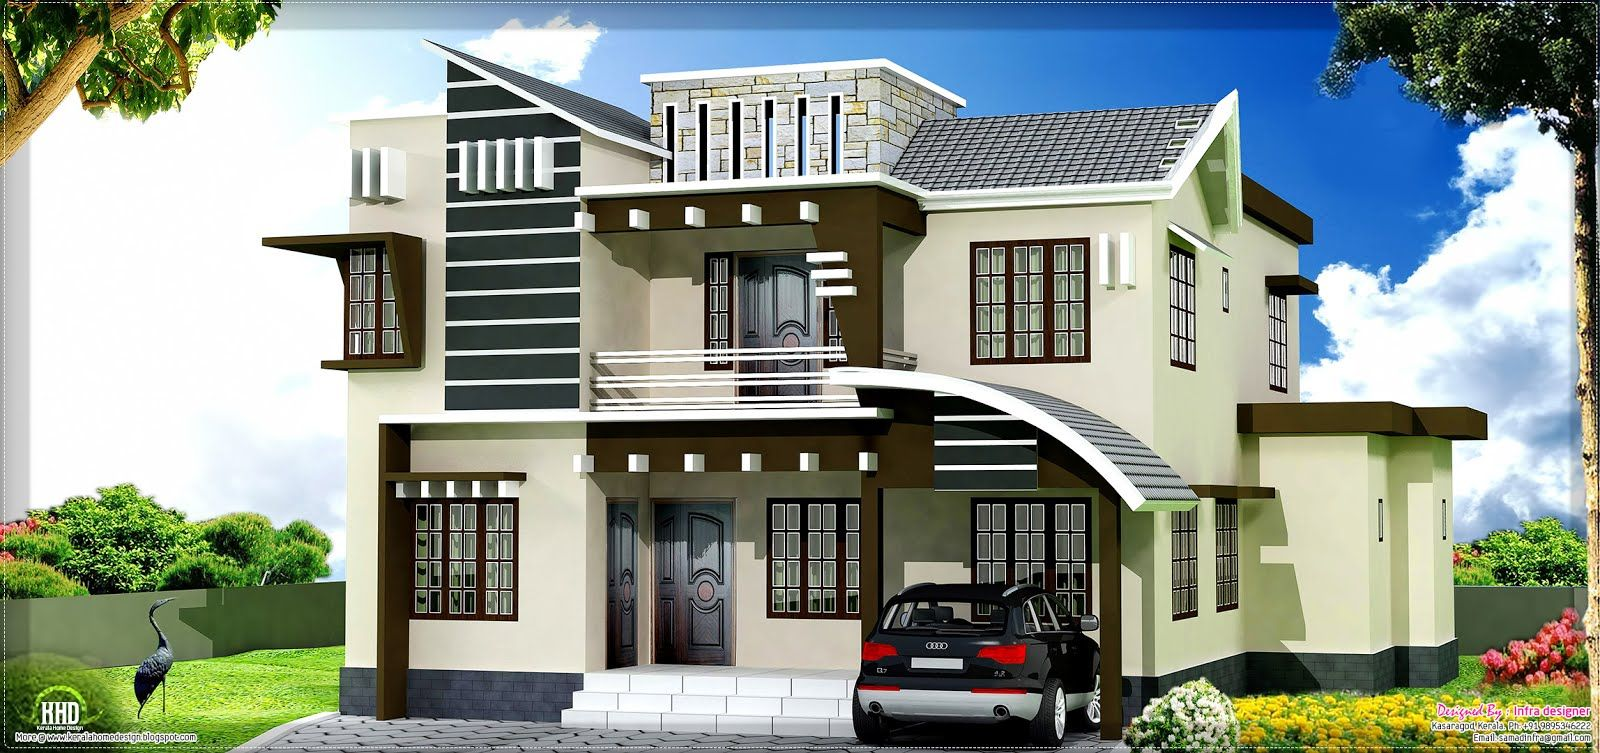 2450 sqfeet home design from kasaragod kerala kerala home design - Home Design Images